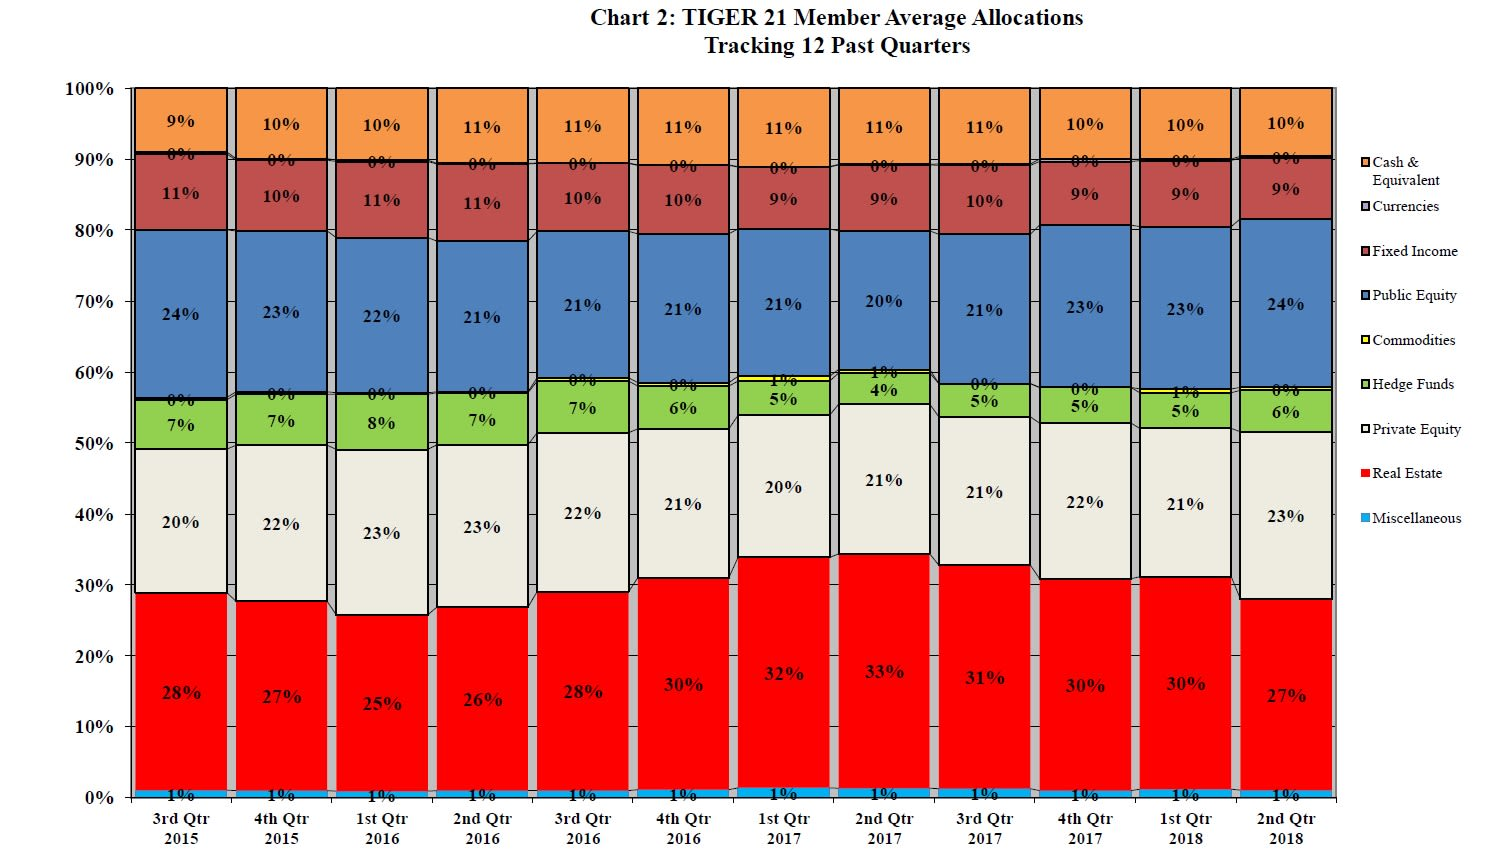 TIGER 21 allocation chart